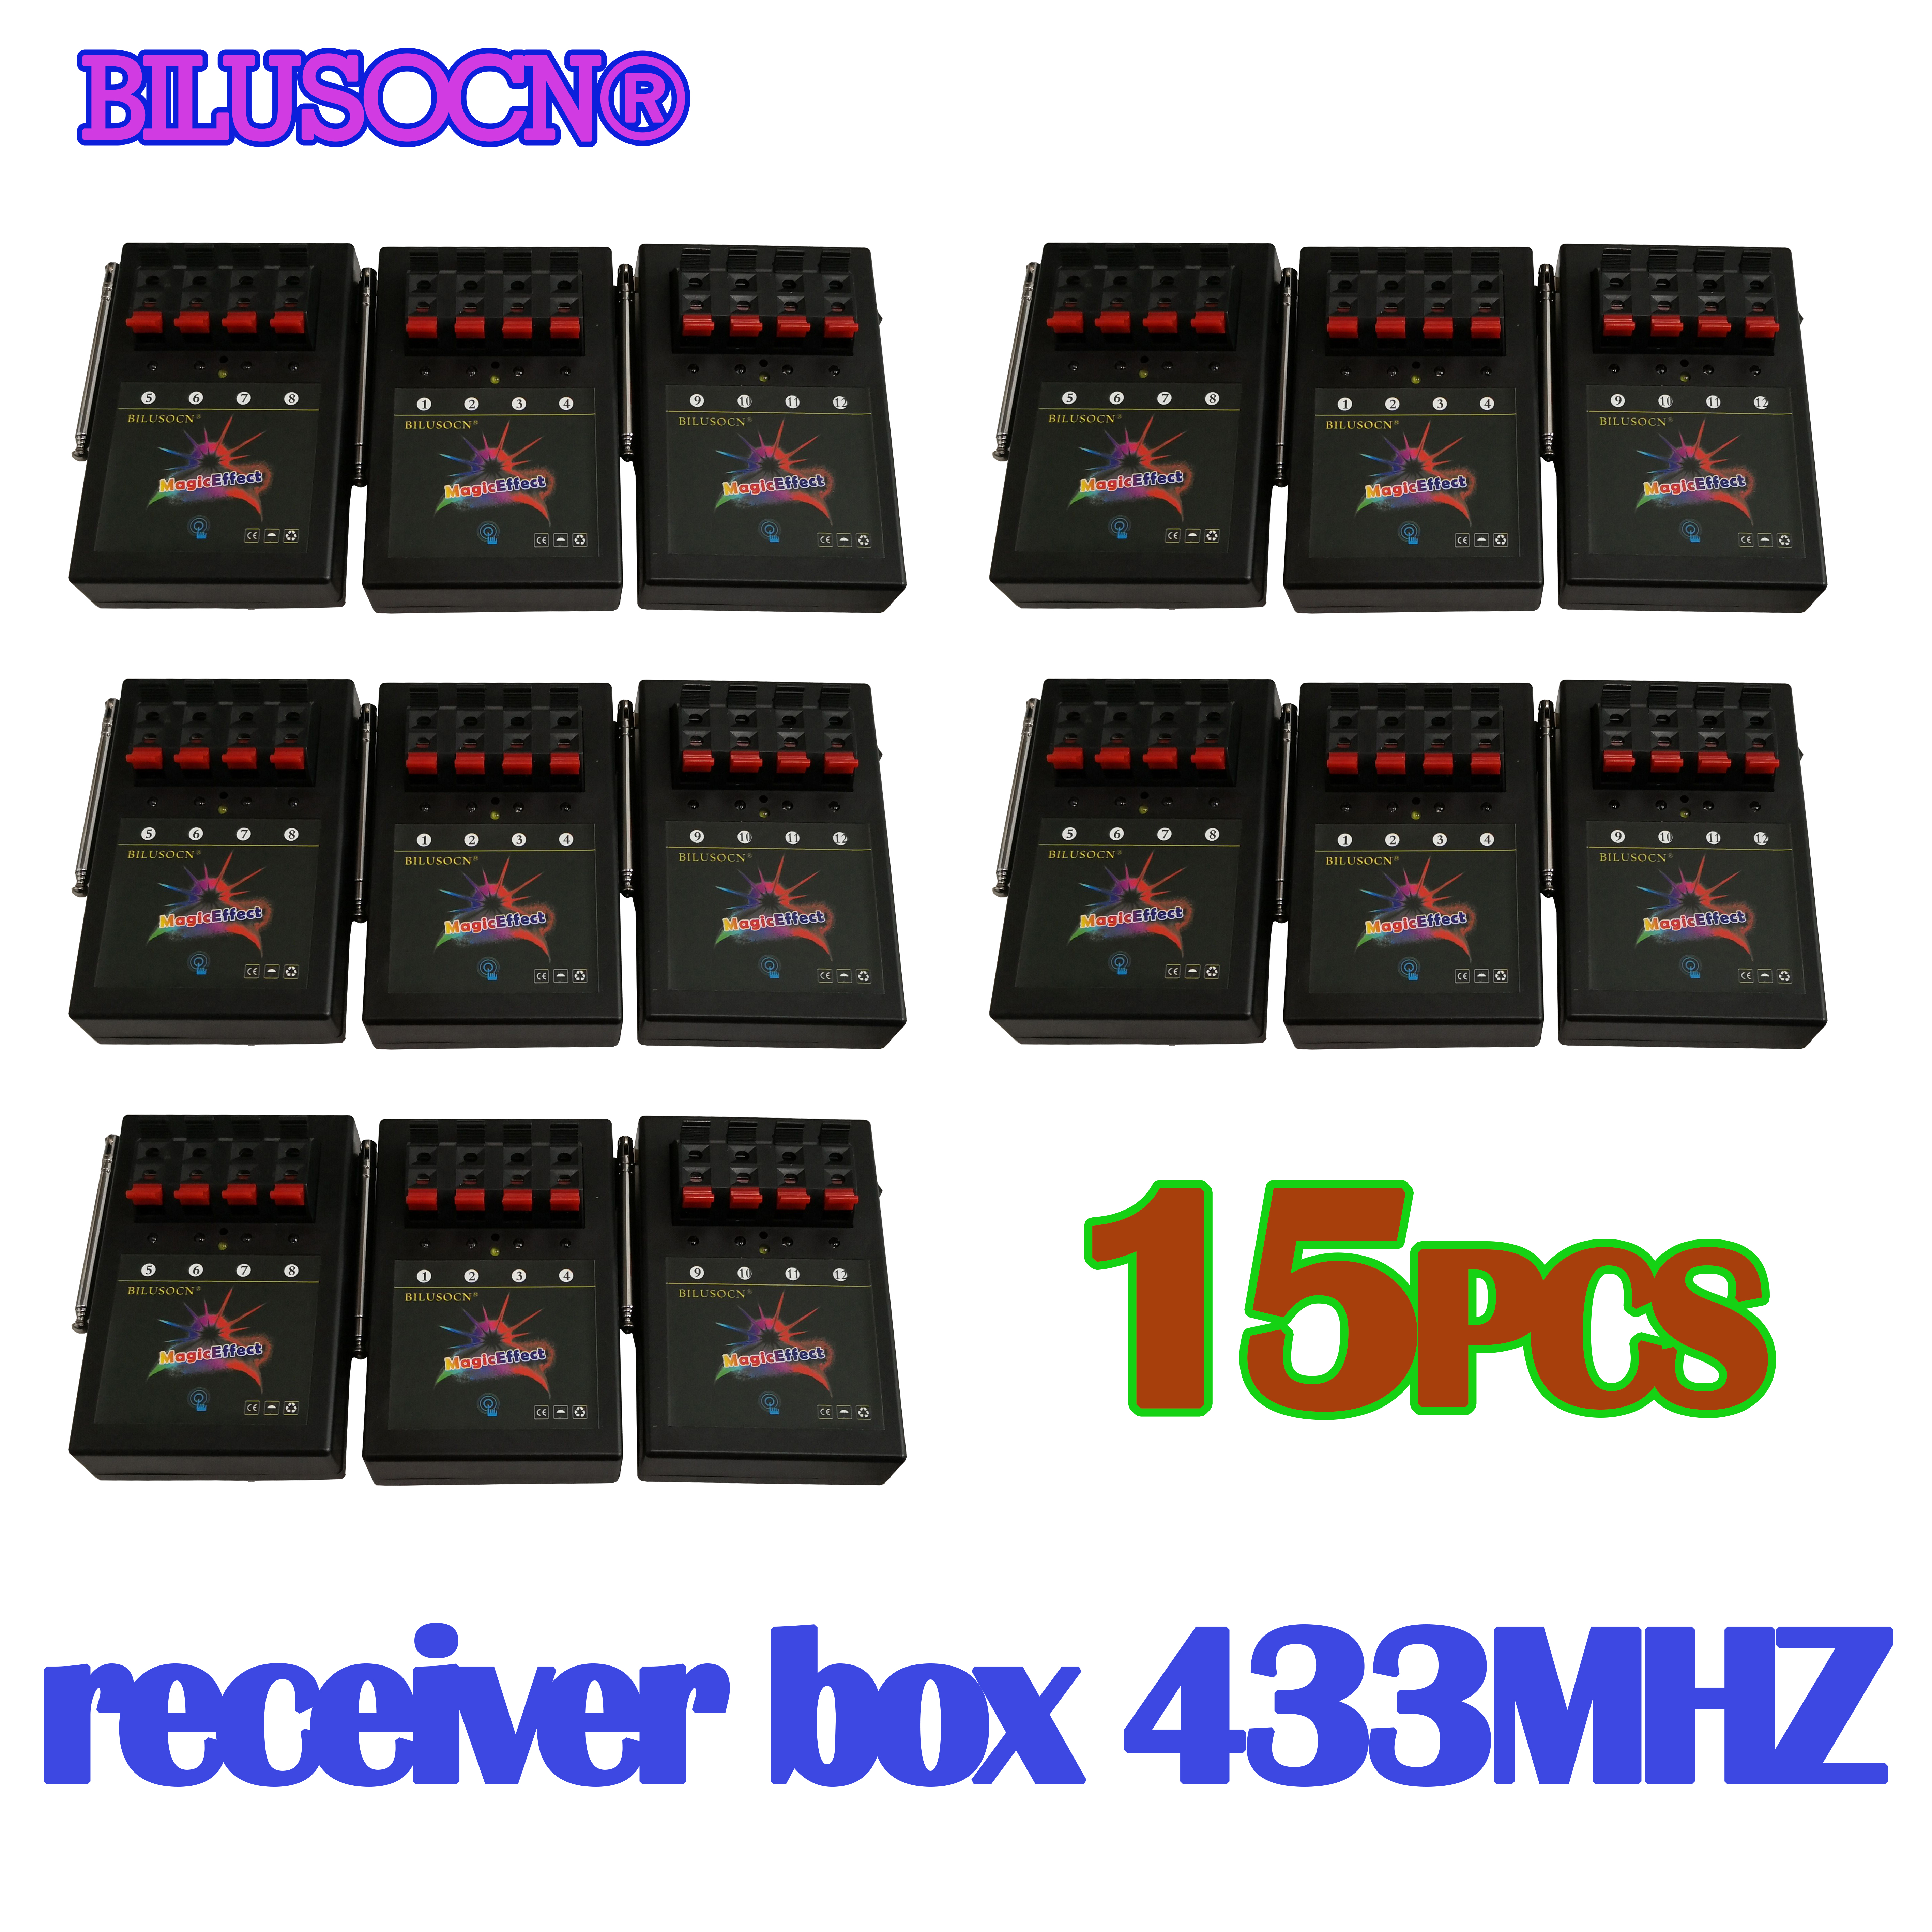 15 PCS 4 cues receiver box 433MHZ for fireworks firing system